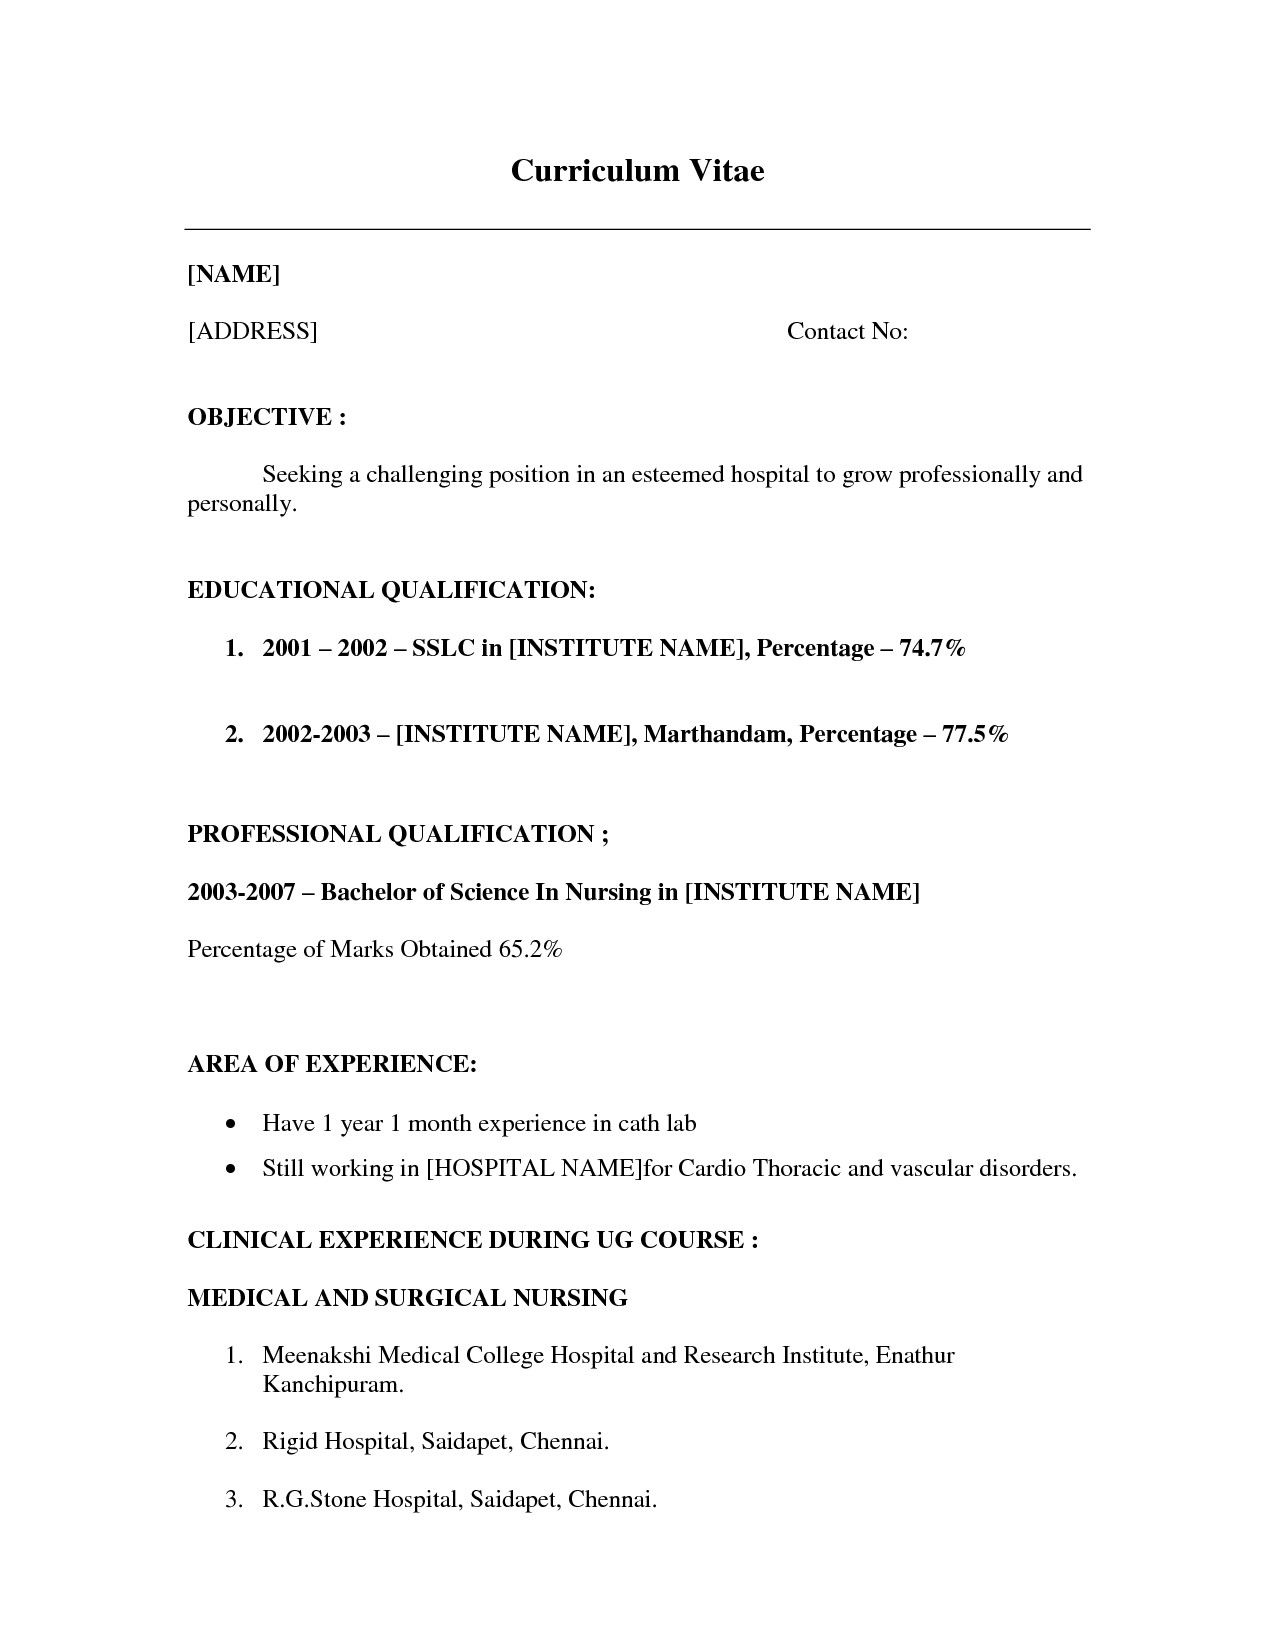 Resume examples little work experience in 2020 job